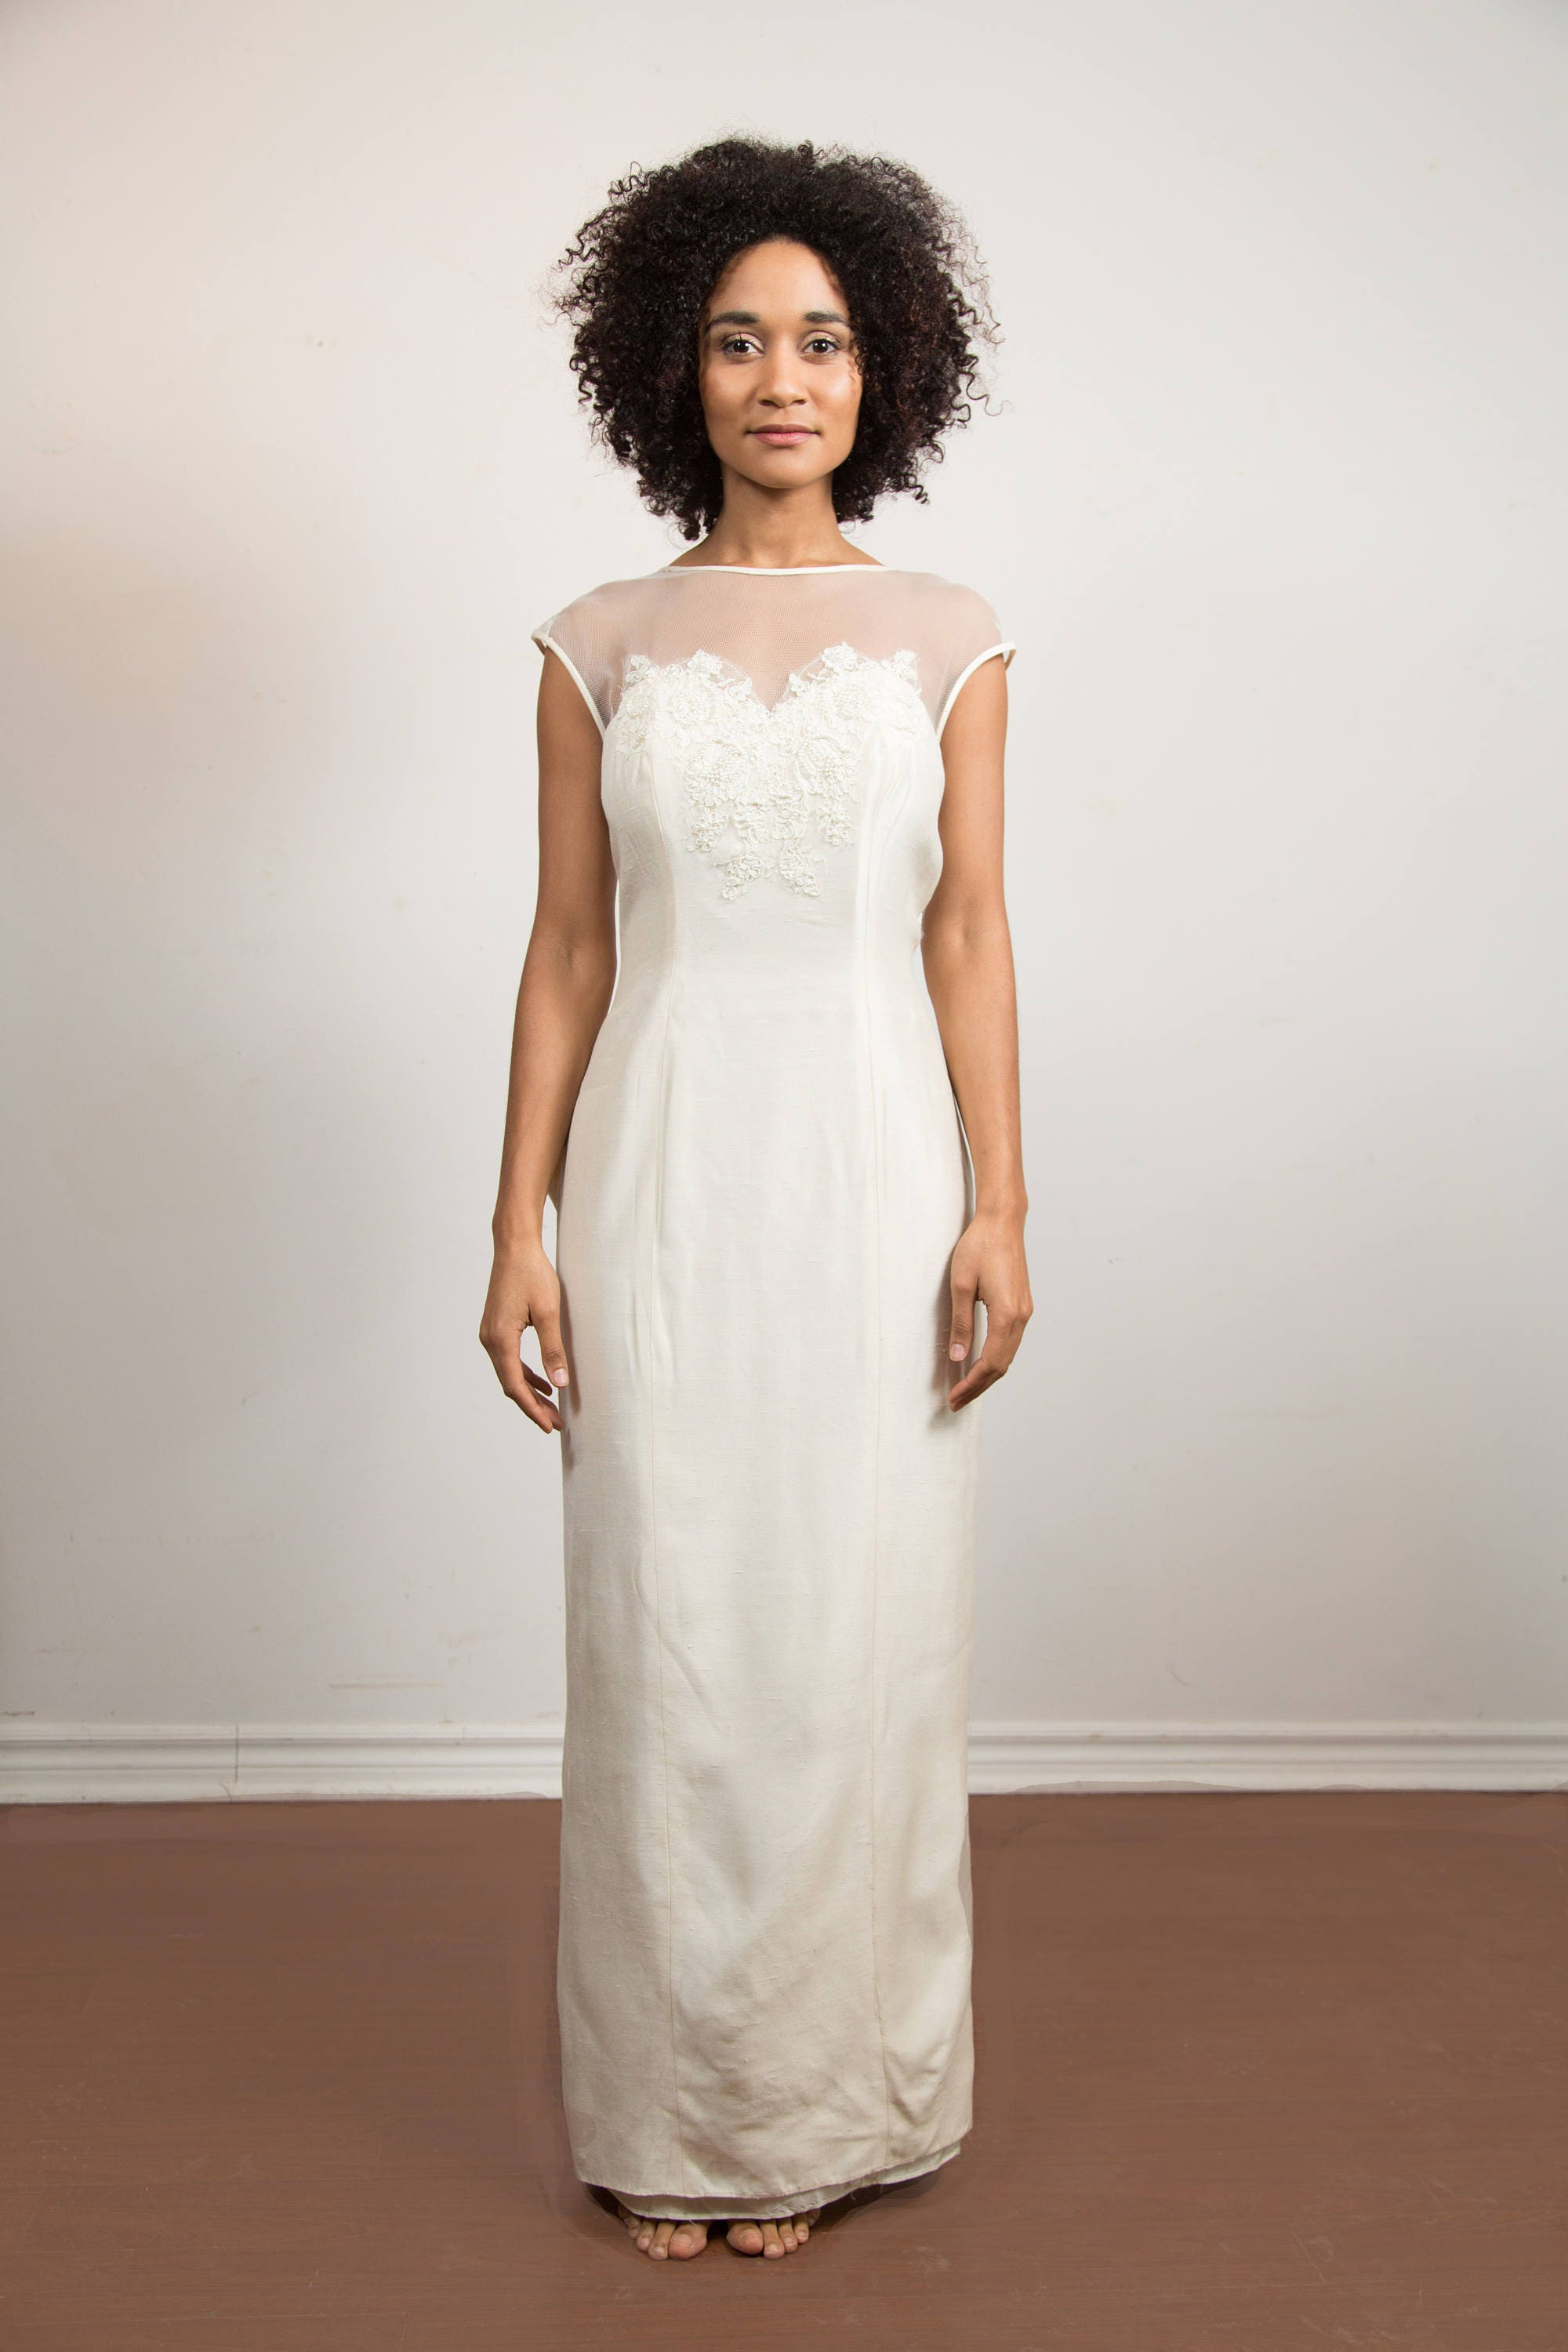 Vintage wedding dress creamy white hand beaded small skinny vintage wedding dress creamy white hand beaded small skinny dress with lace shoulders alfred angelo designer dress ombrellifo Image collections